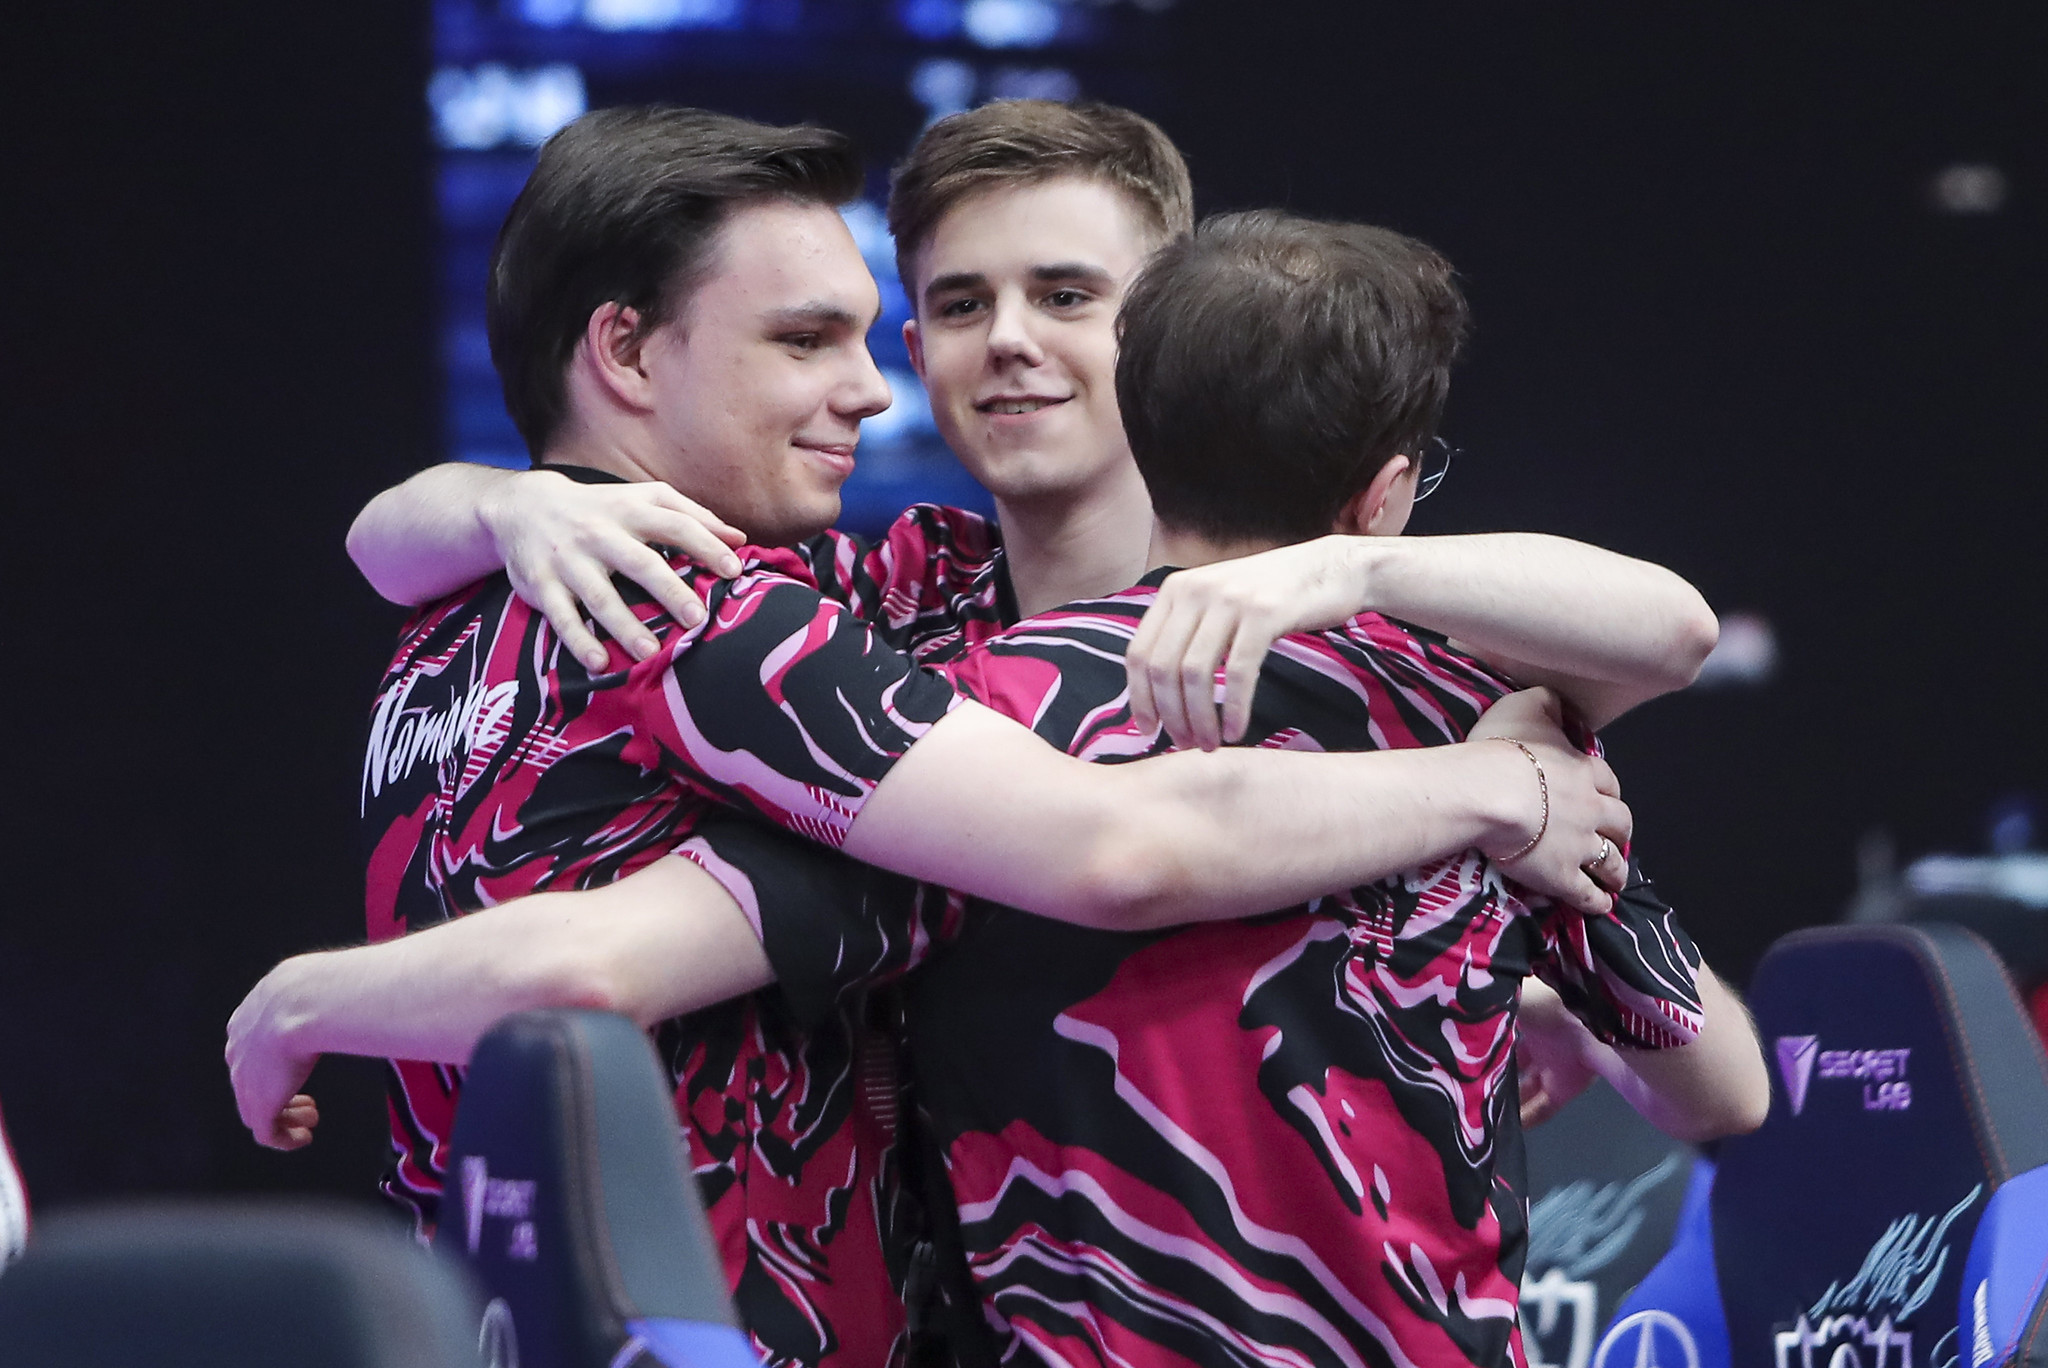 Interview With Unicorns Of Love Headcoach Sheepy Following Their Elimination From Worlds 2020